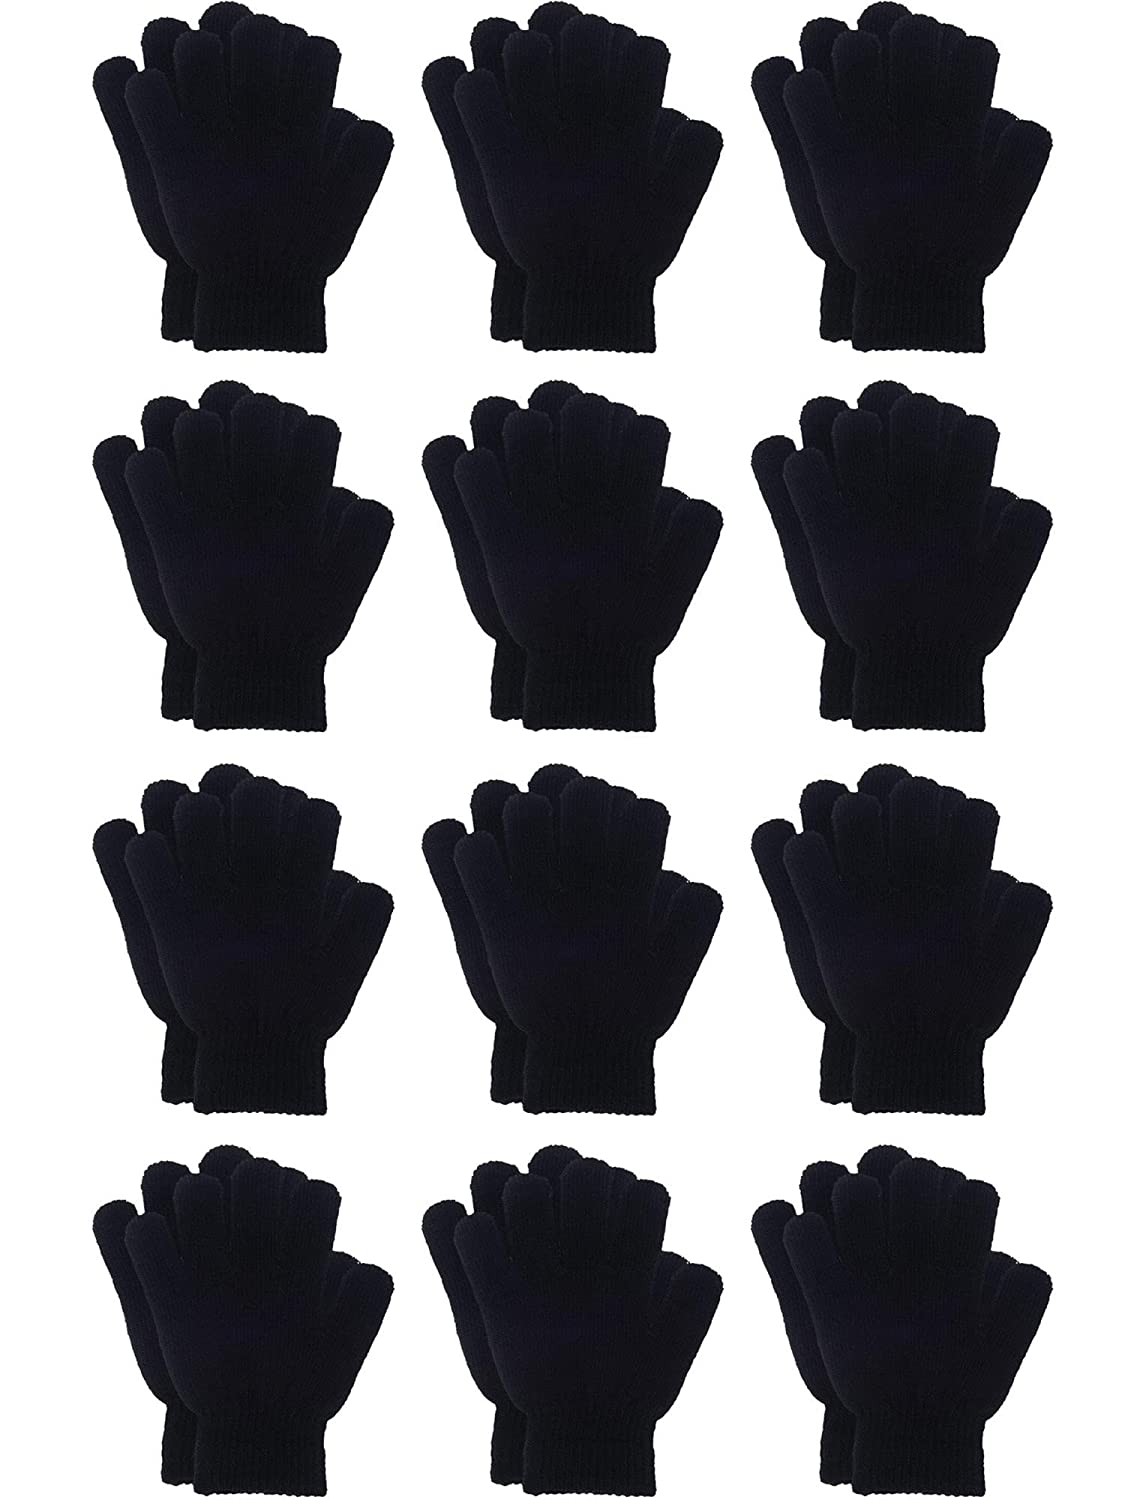 Sumind 12 Pairs Winter Knitted Magic Stretch Gloves Kids Boys Girls Knit Cotton Warm Gloves for Children